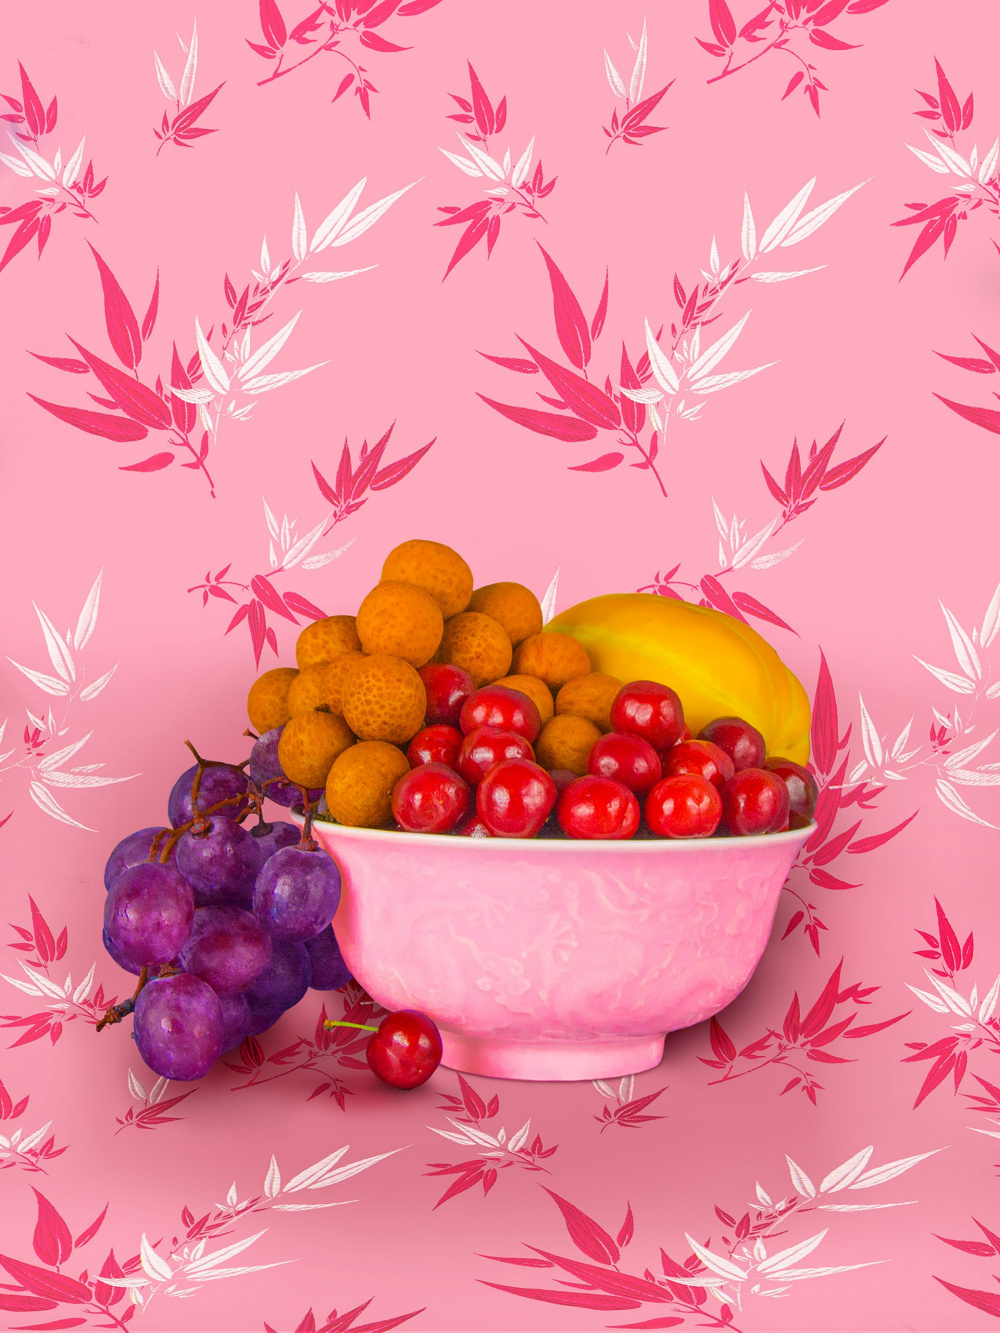 Shellie Zhang, Still Life with Berries, 2018-2019. Courtesy of the artist.